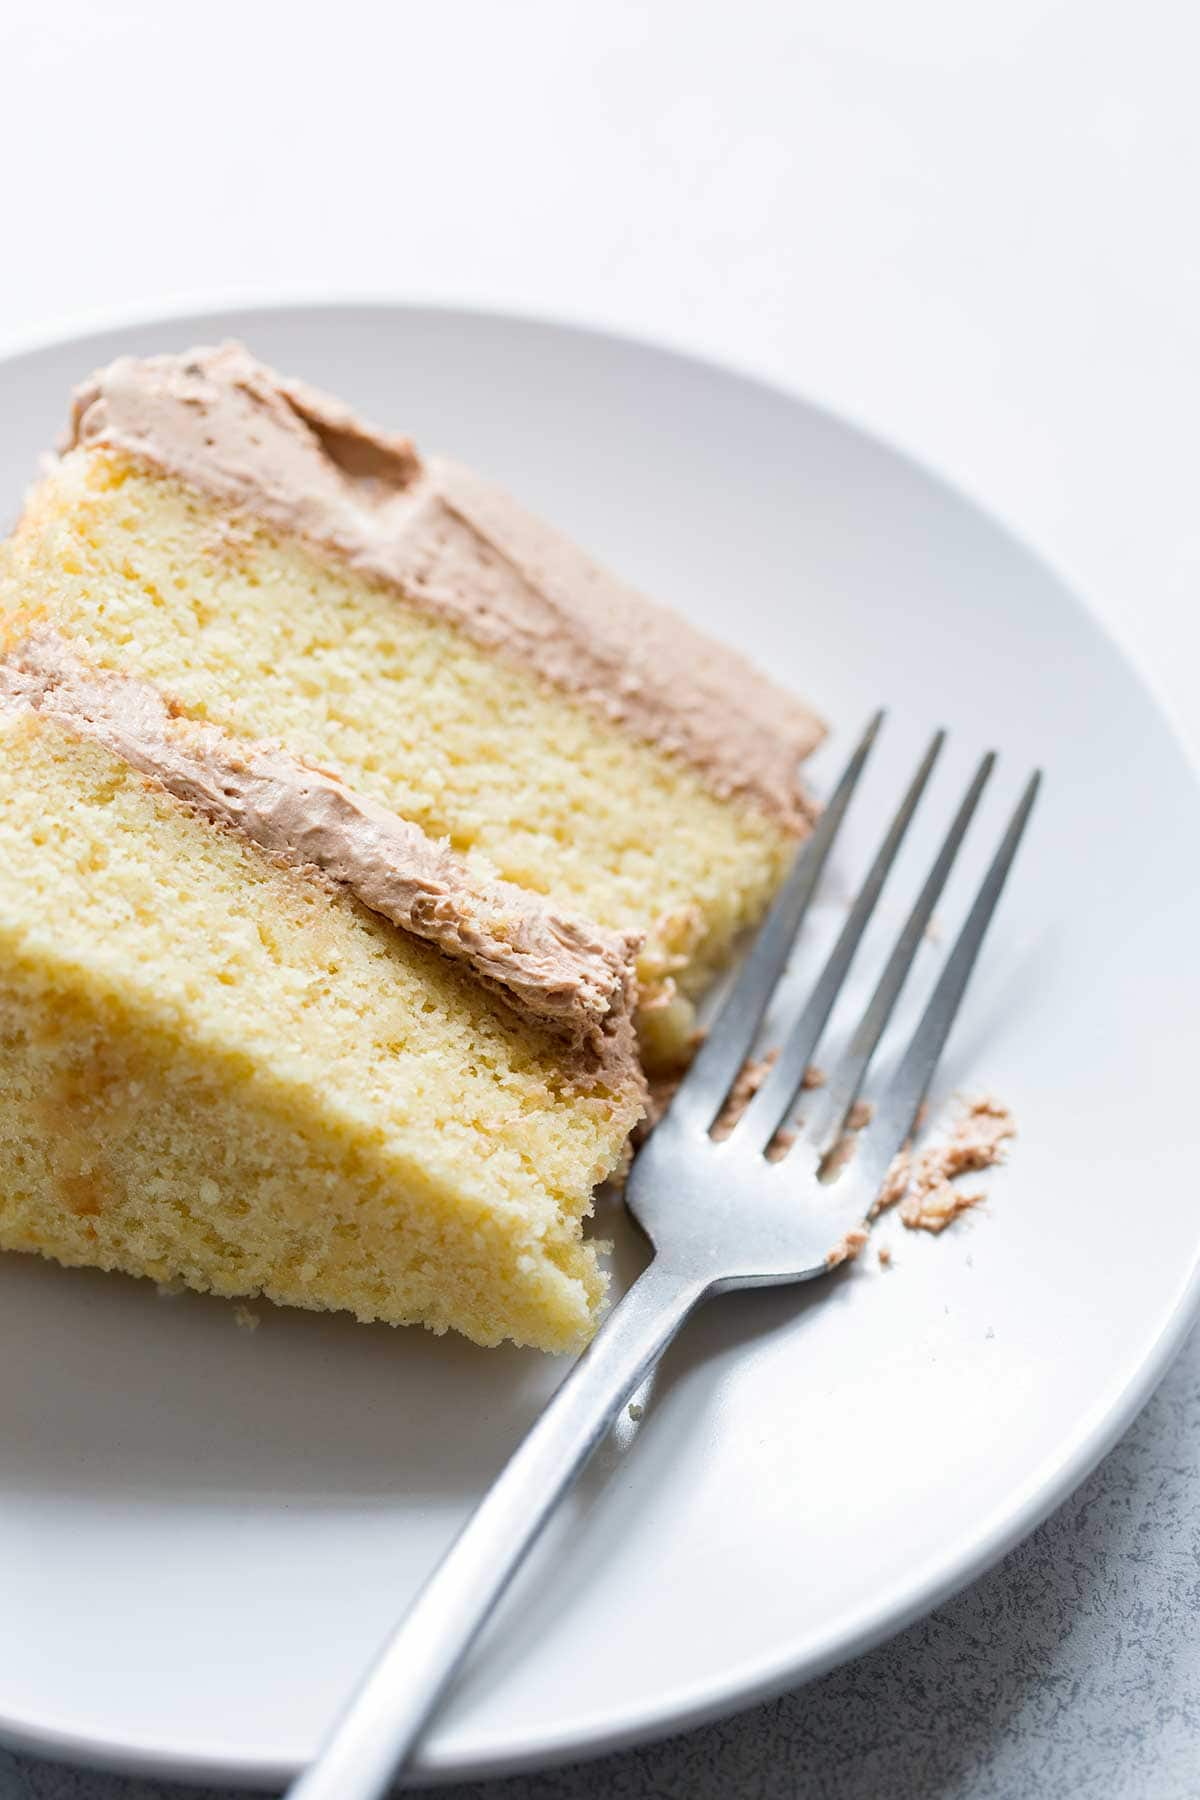 You don't need to buy boxed cake mix! This yellow cake recipe is